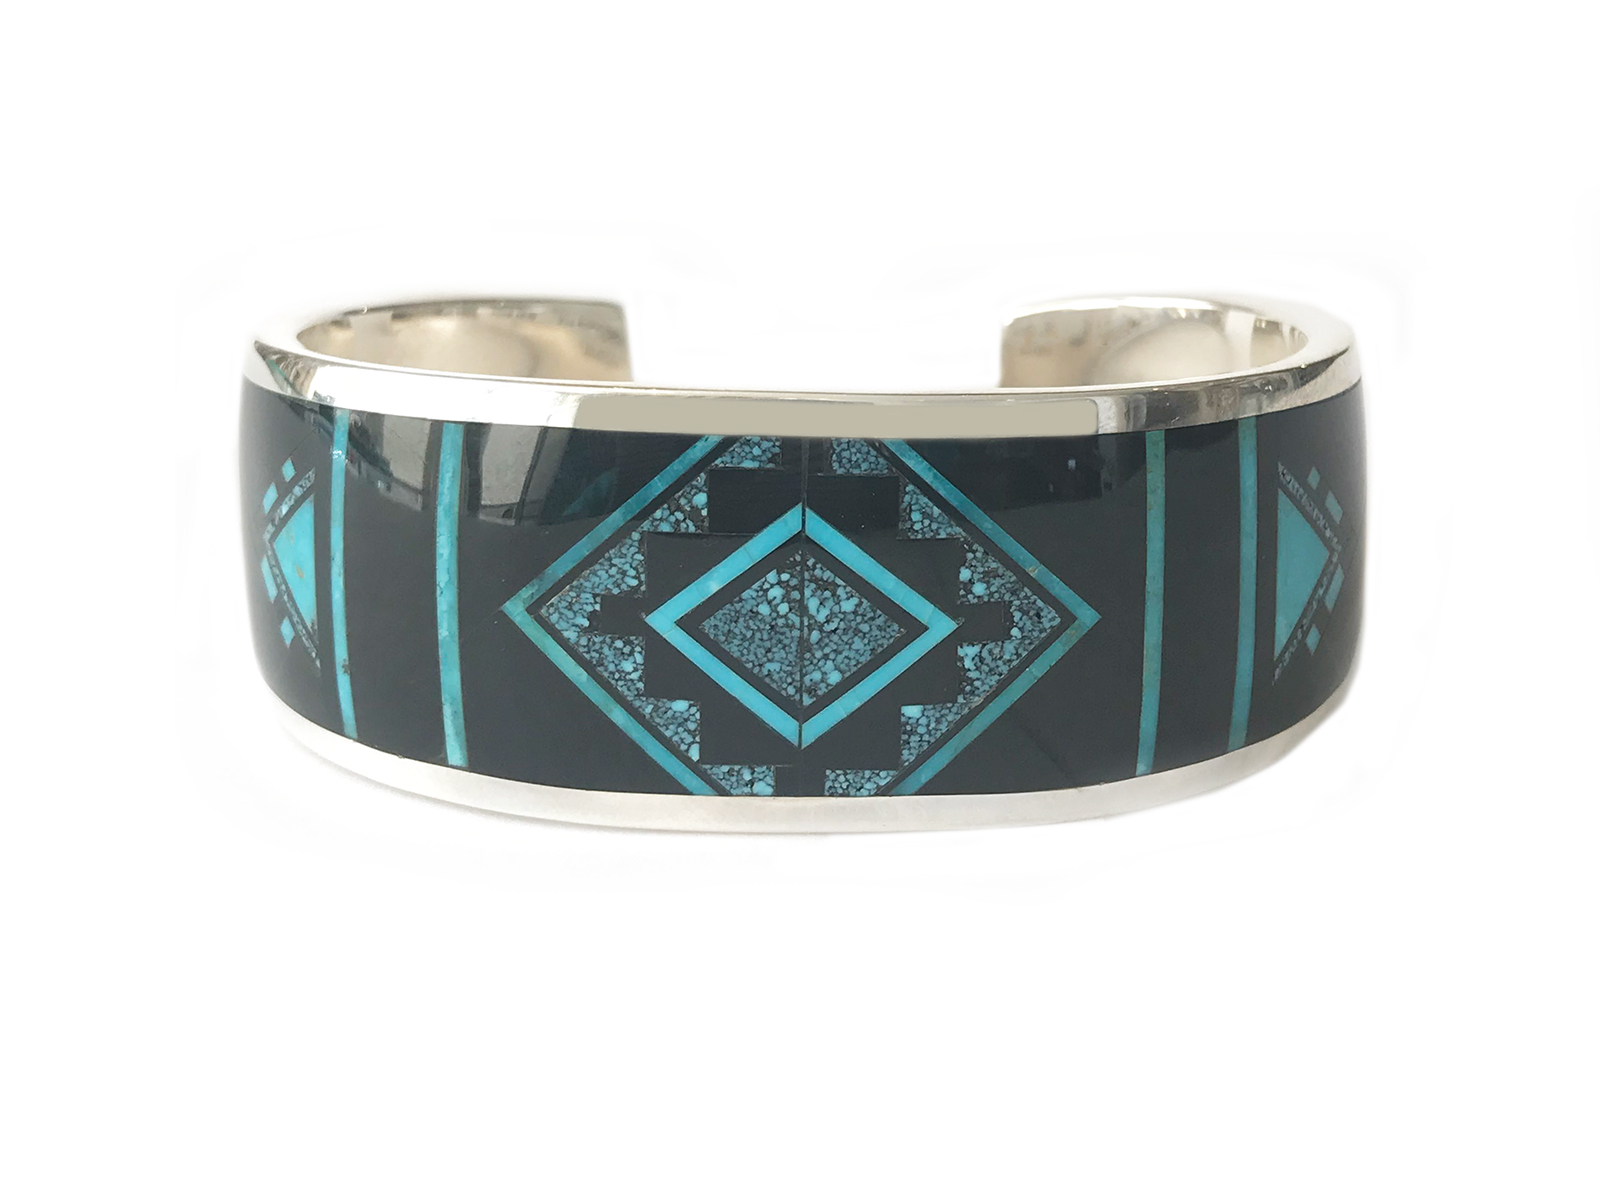 Ithaca Peak Turquoise Inlay Cuff